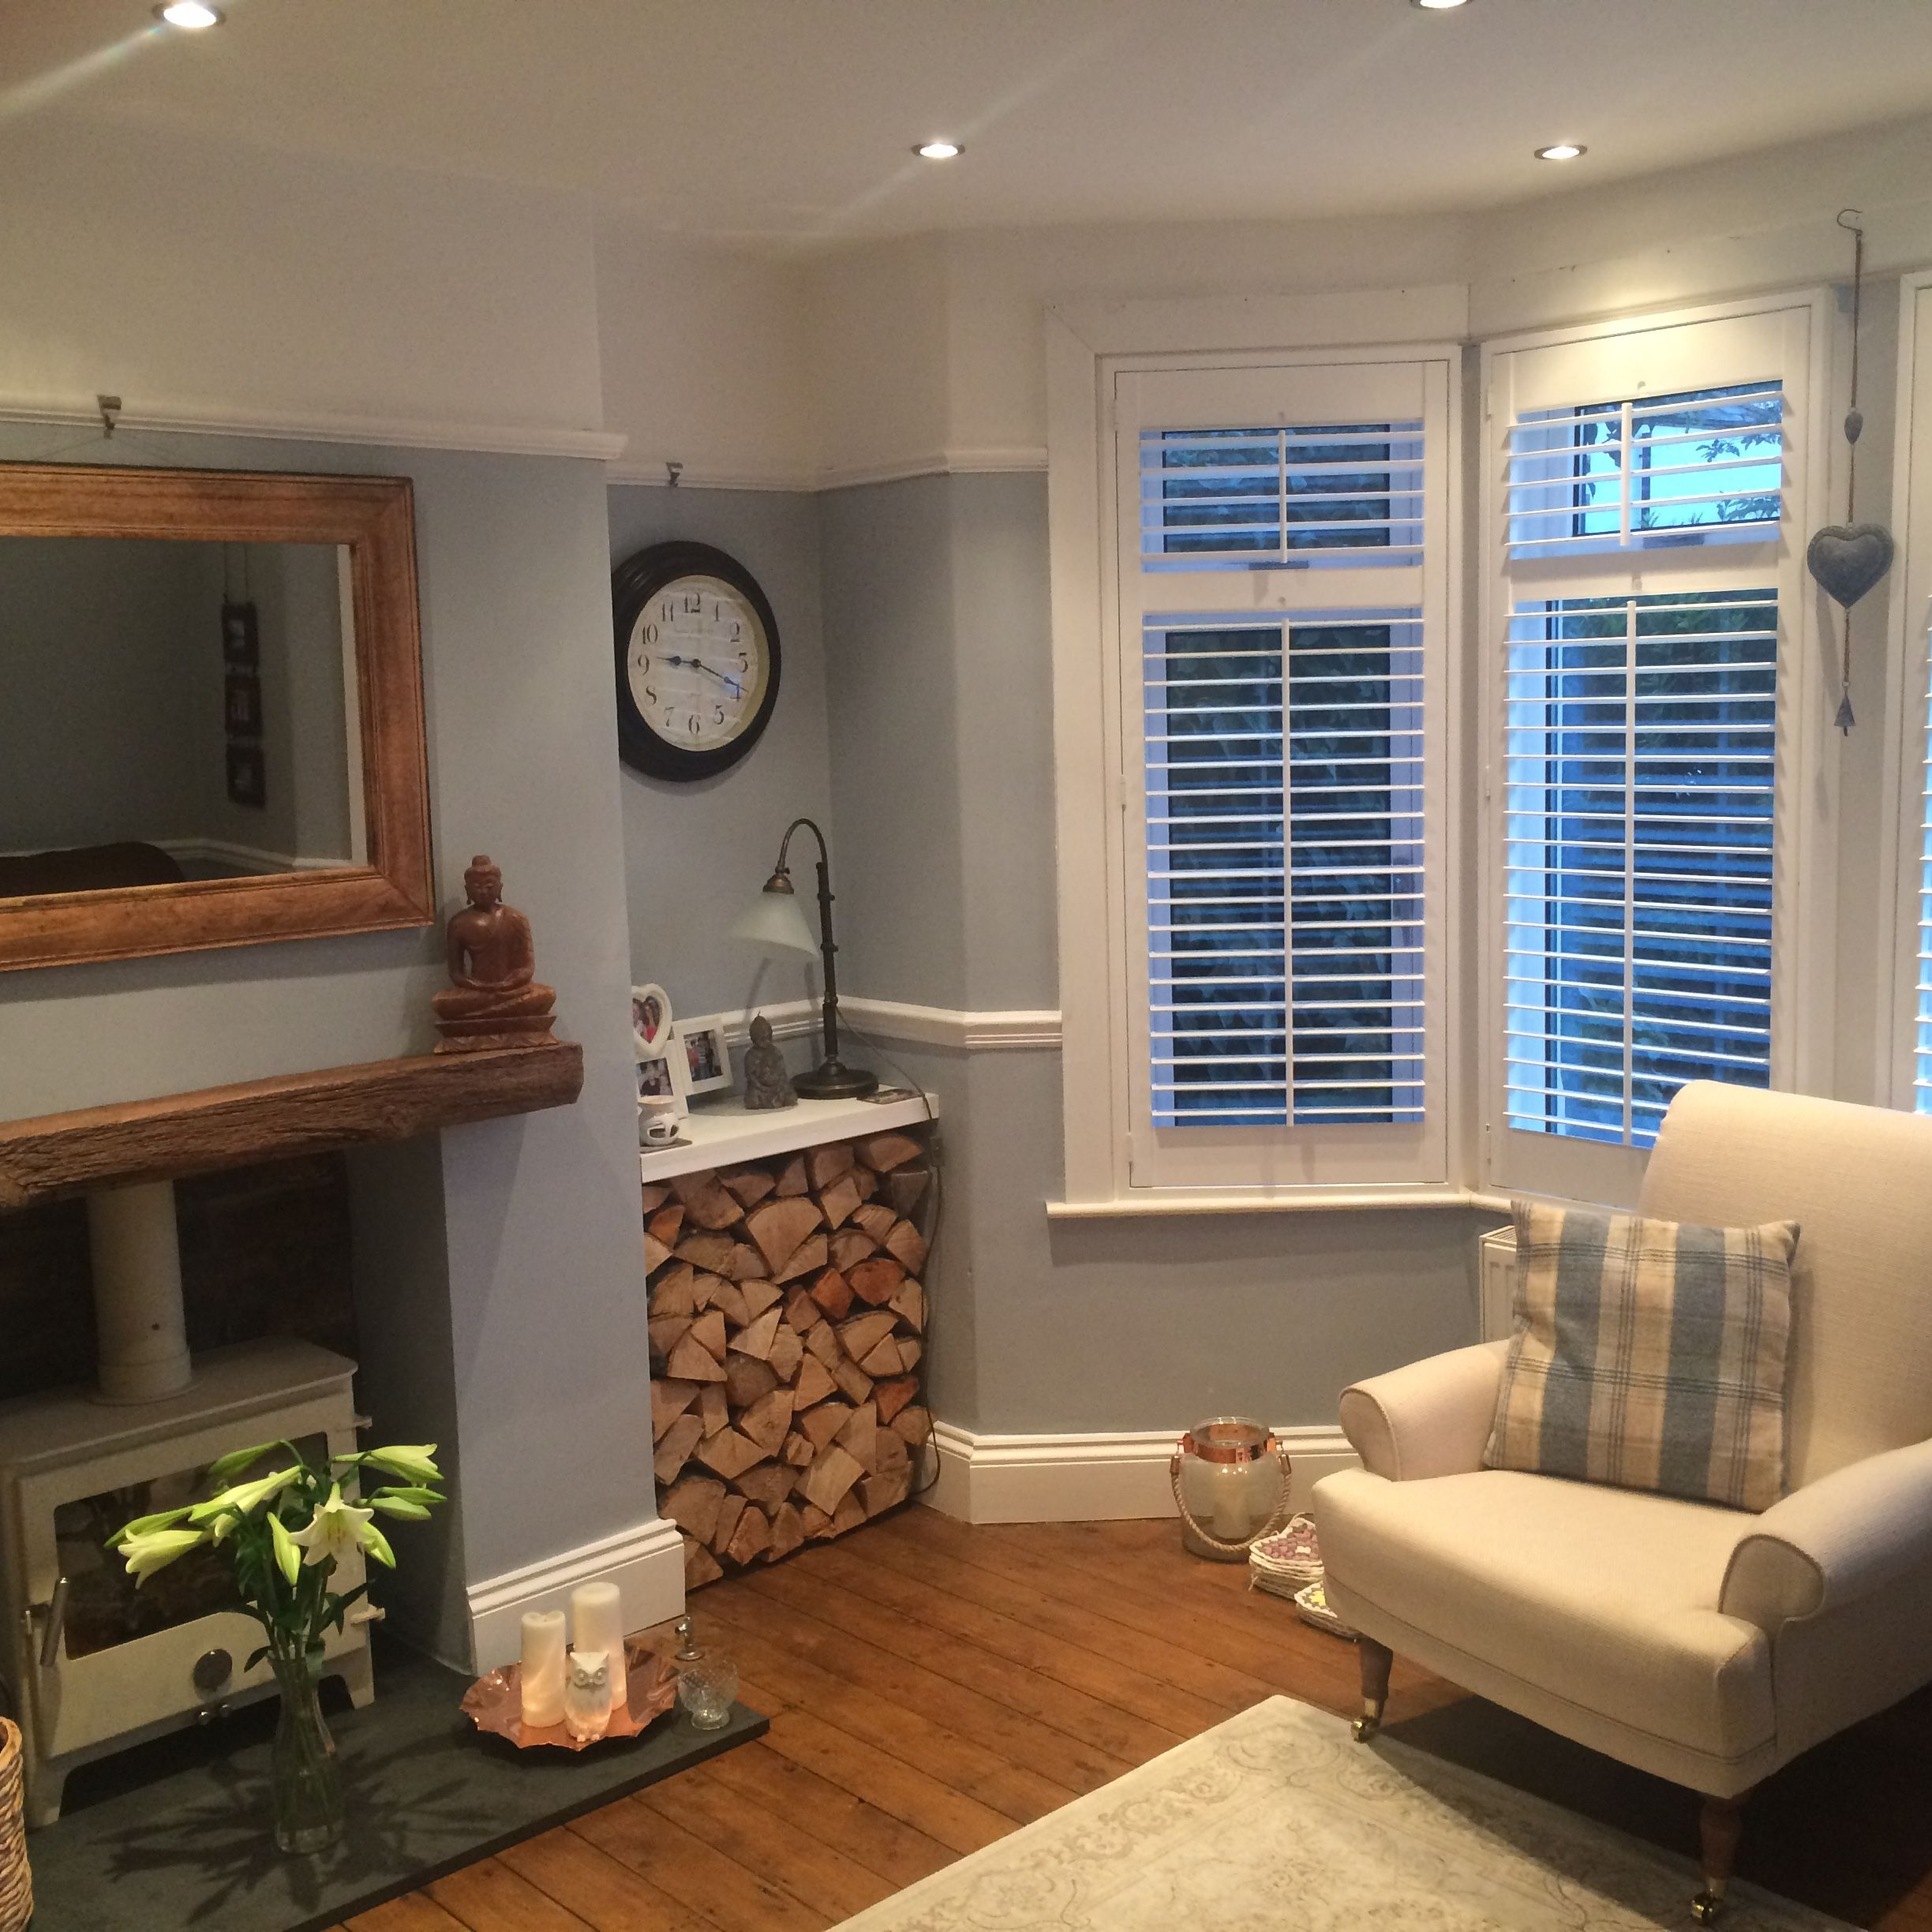 cosy living room with log burner design ideas uk stripped floorboards wood slate hearth wooden beam window shutters and arm chair